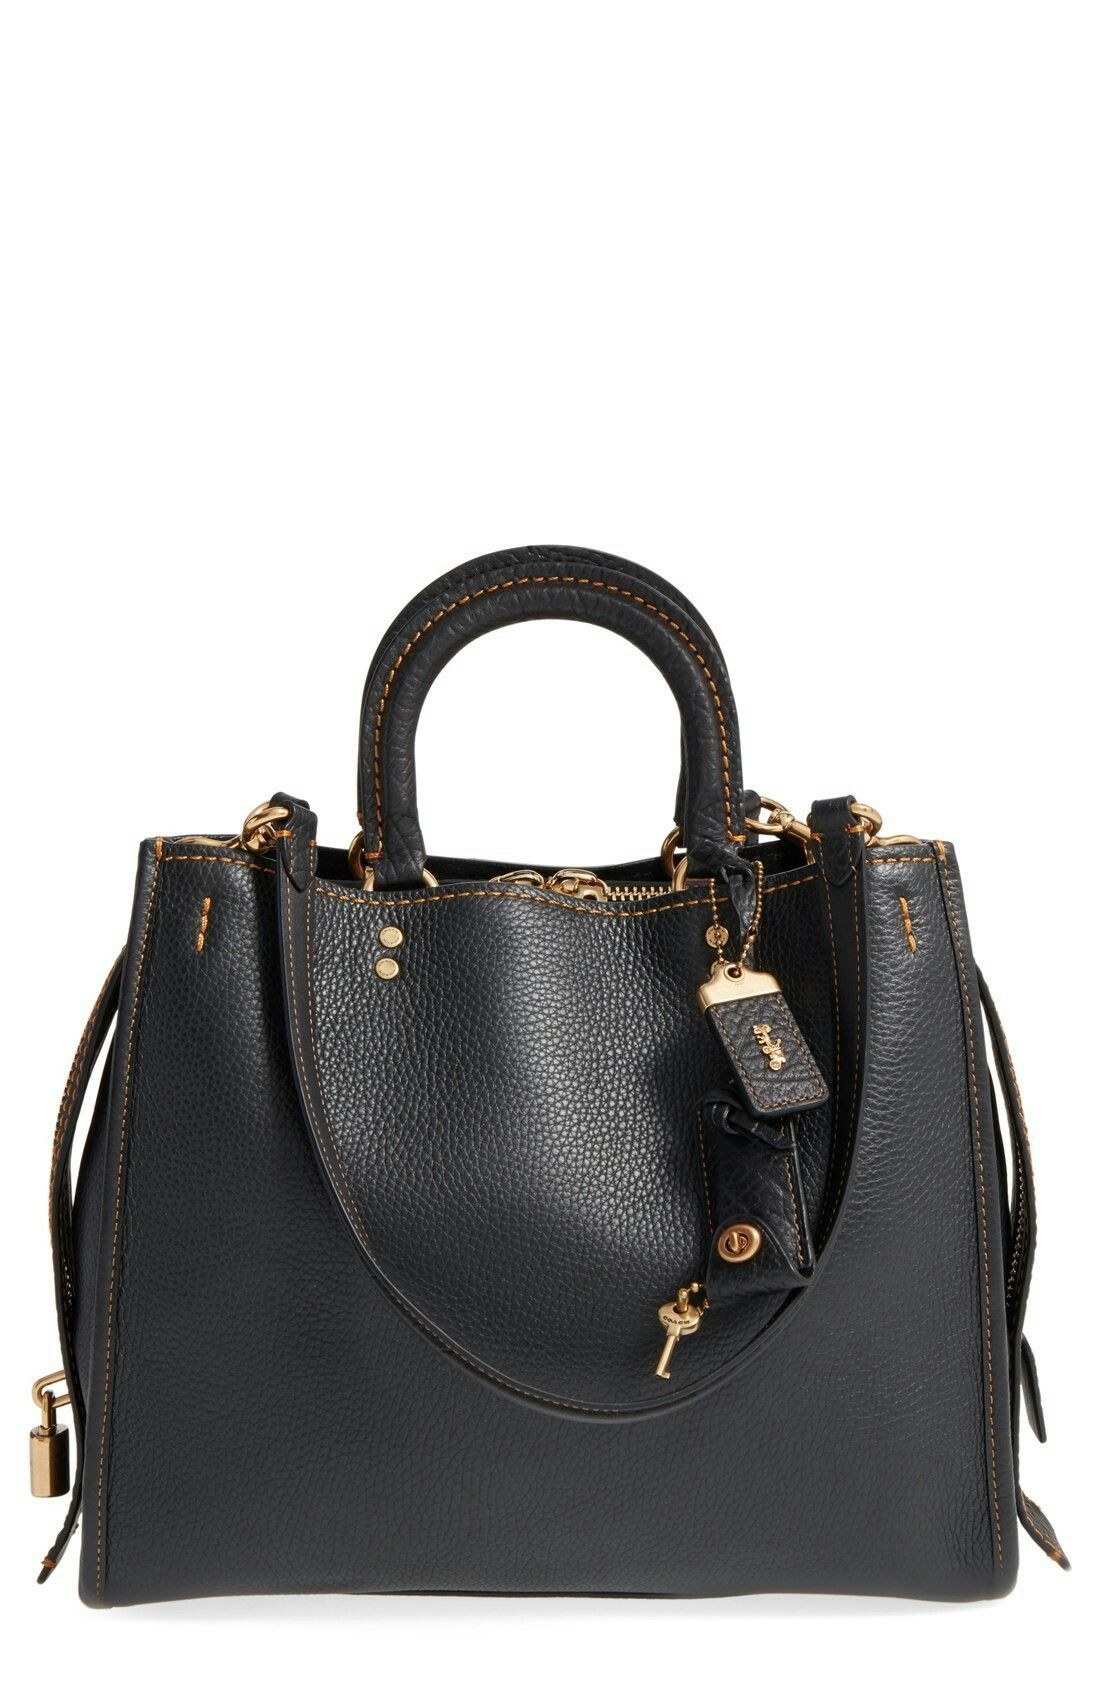 designer handbags coach 6hcw  Coach Rogue in black/old brass